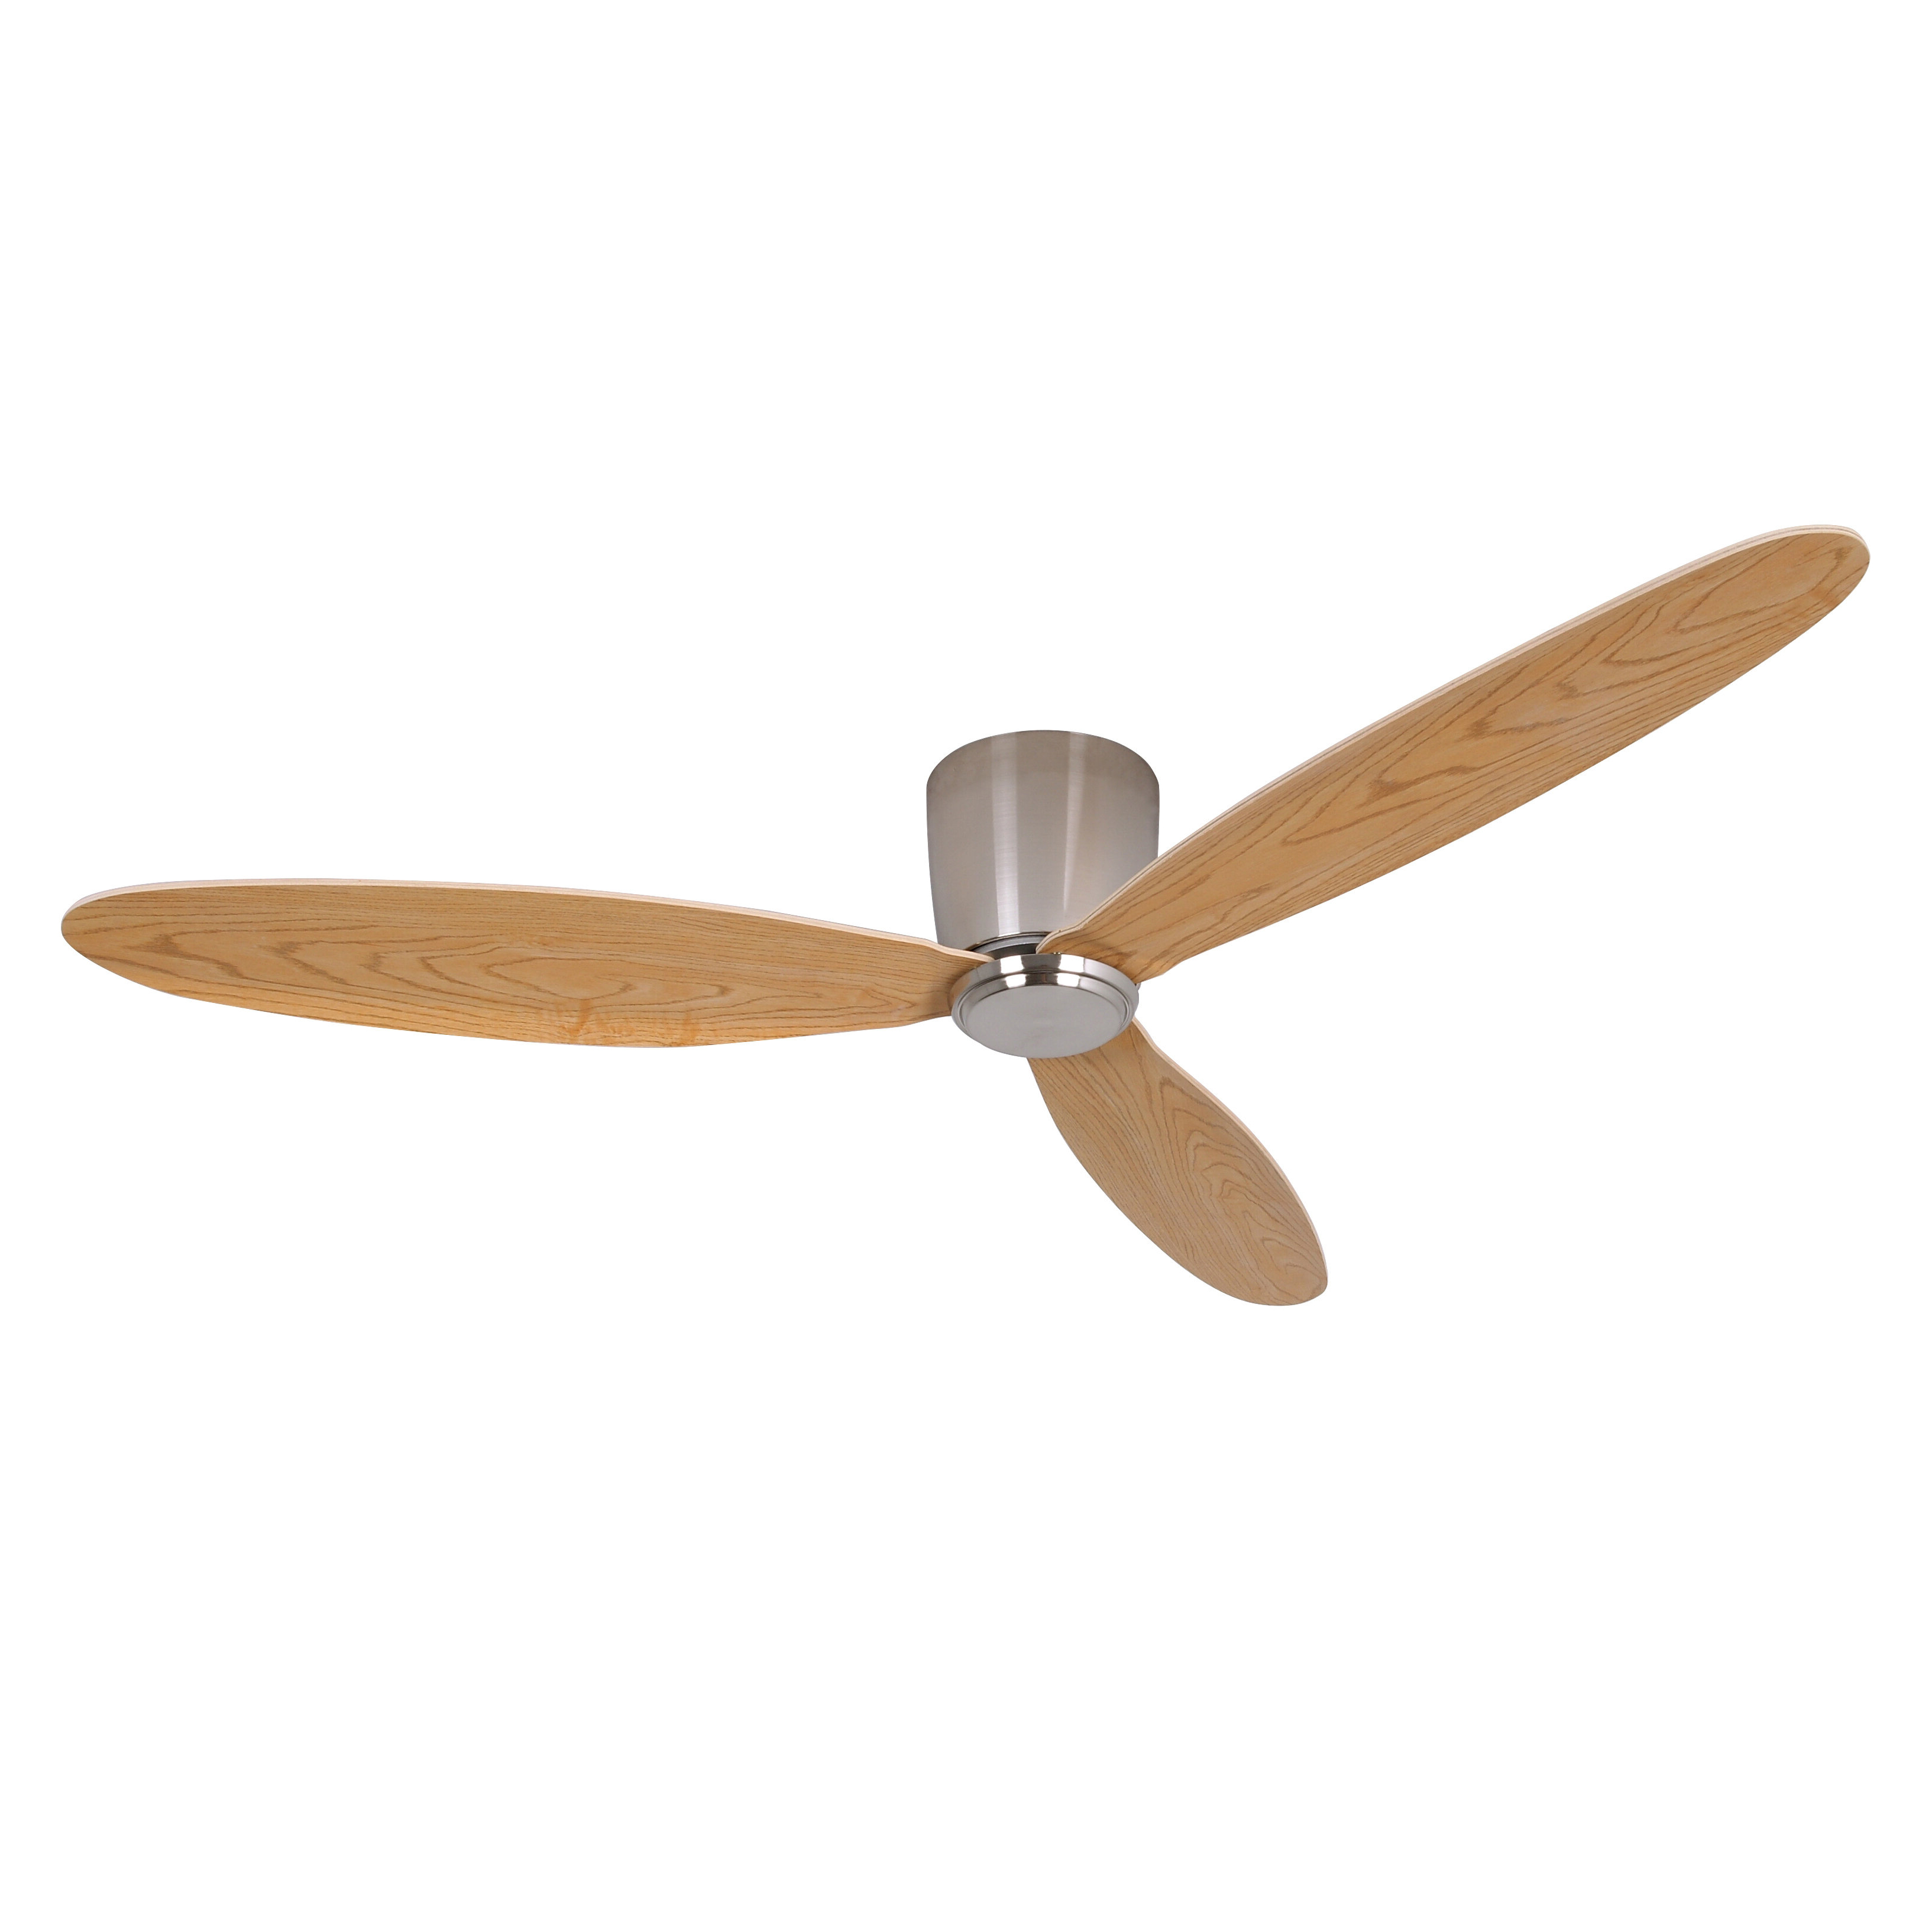 "Theron Catoe 3 Blade Ceiling Fans In Widely Used 52"" Anadarko 3 Blade Ceiling Fan With Remote (View 10 of 20)"